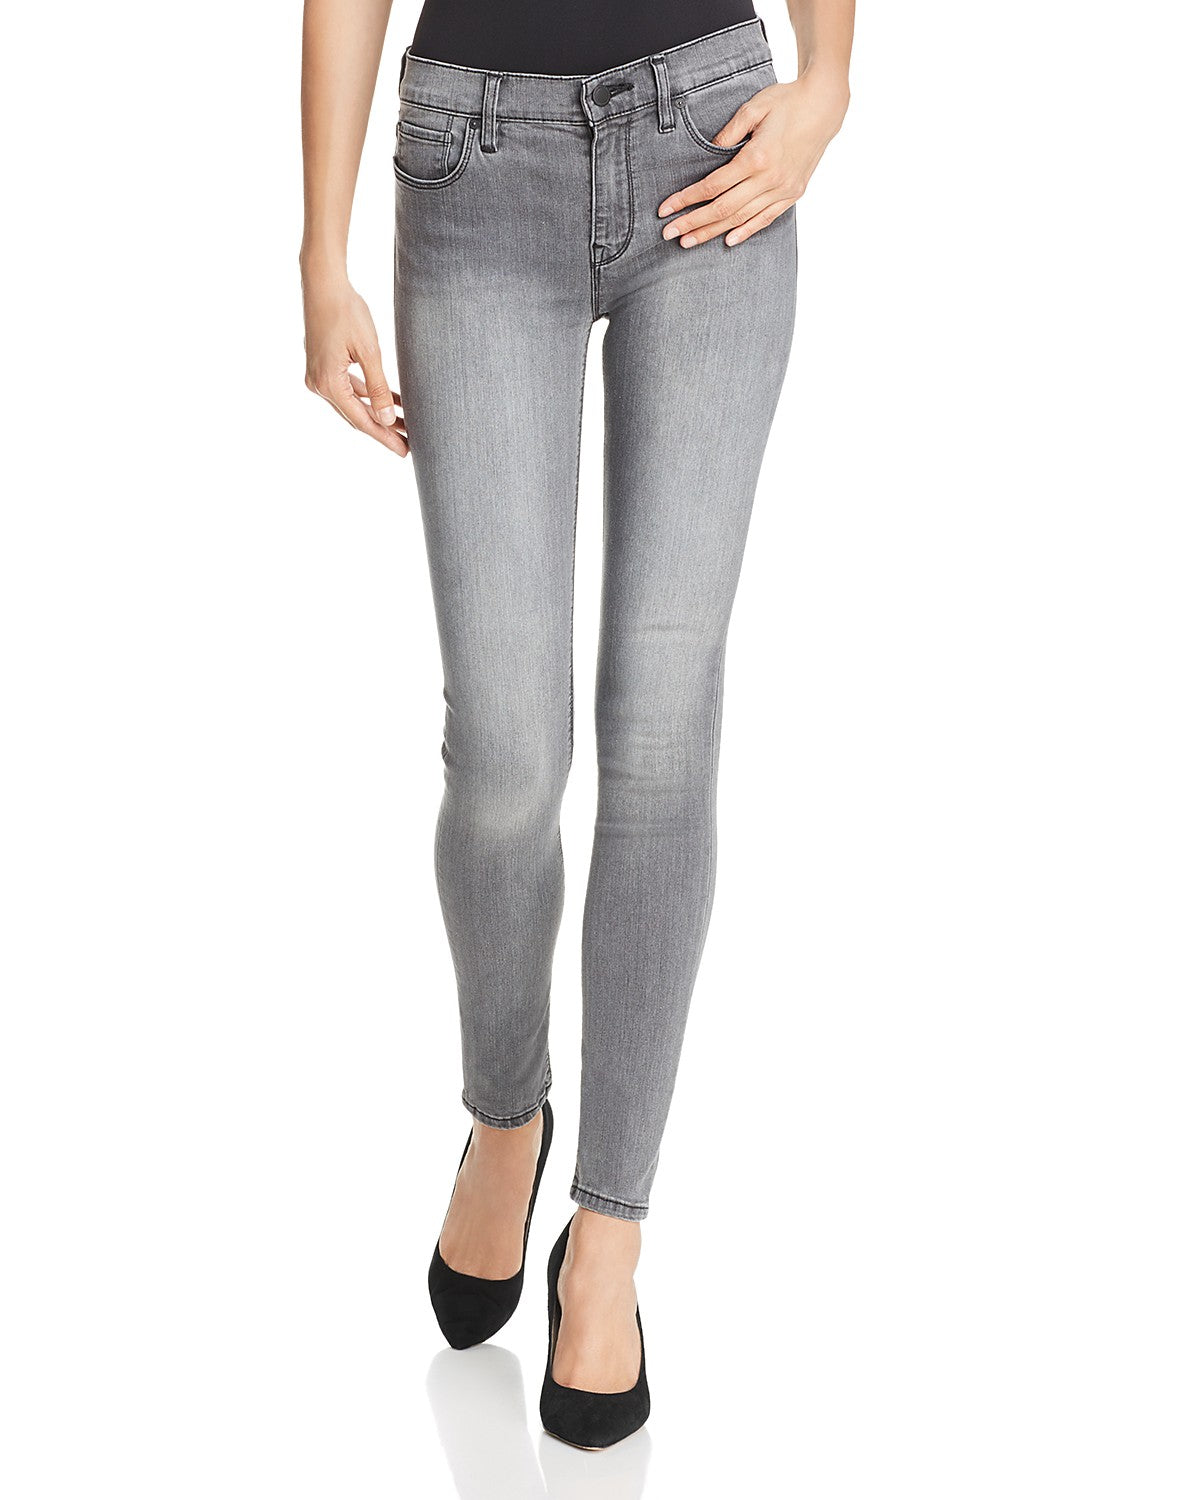 Hudson Nico Midrise Super Skinny Jeans in Trooper Grey WM407DEZ